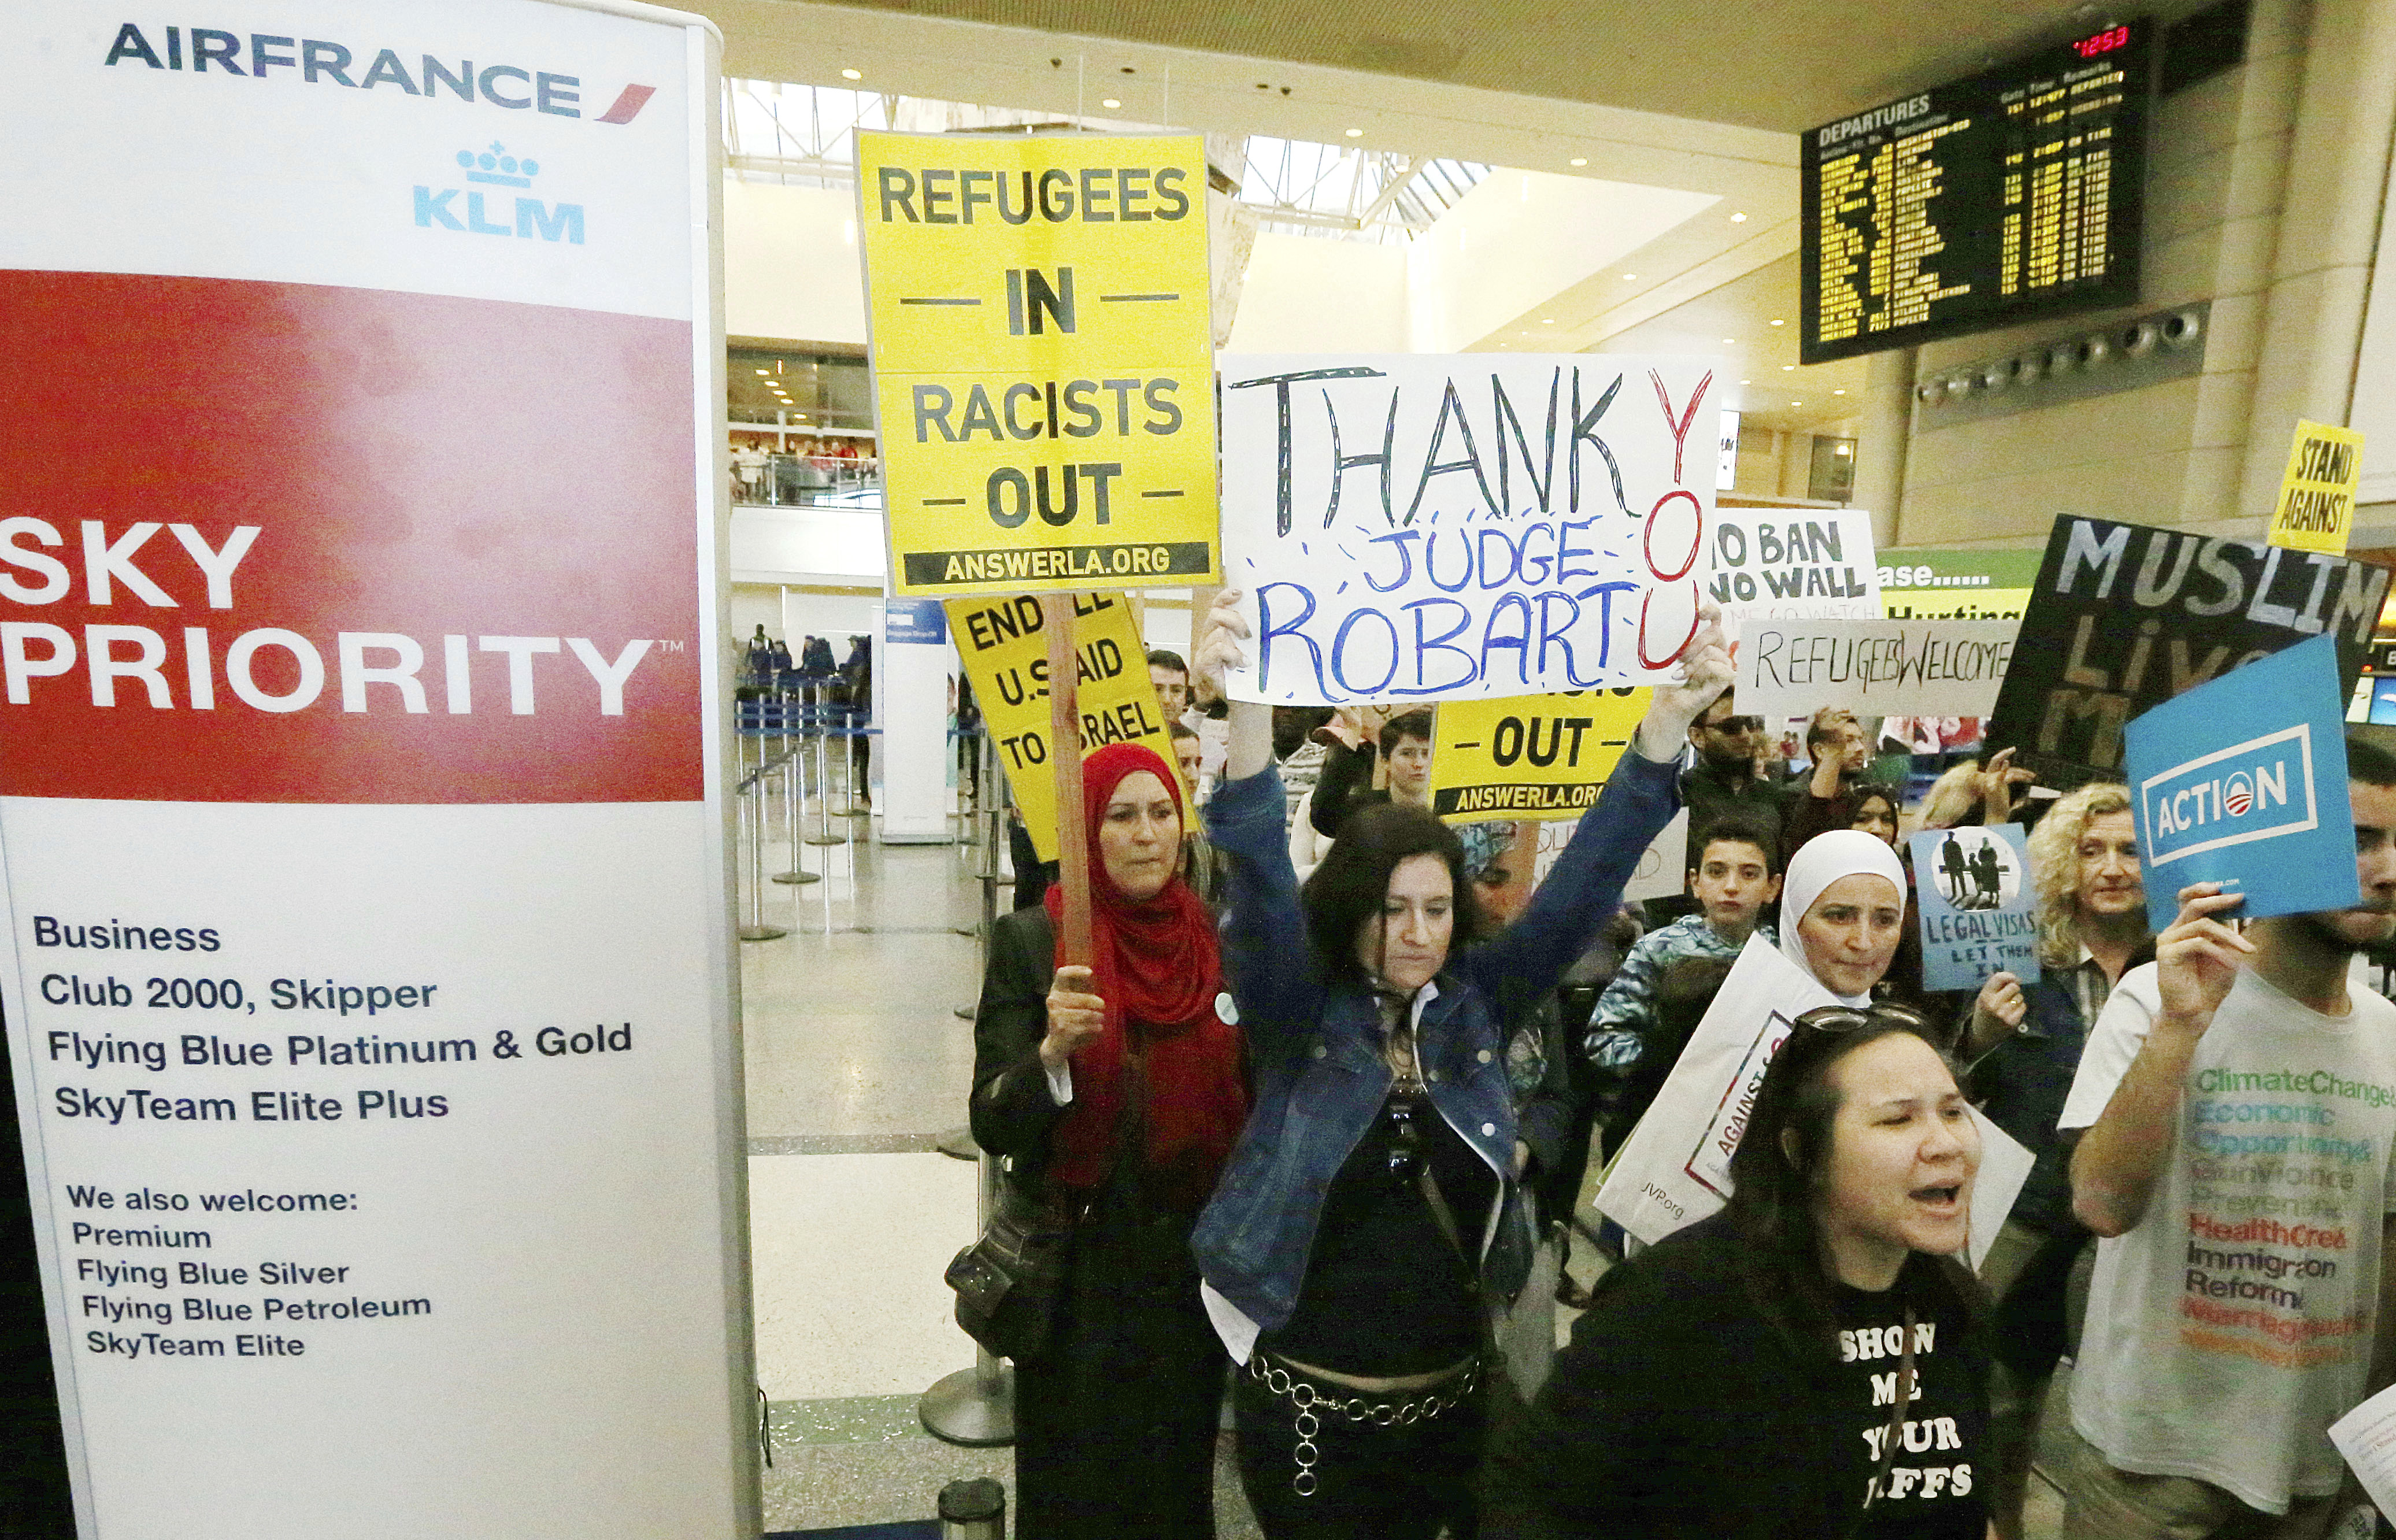 Demonstrators opposed to President Trump's travel ban march through Tom Bradley International Terminal at Los Angeles International Airport, Feb. 4, 2017. One sign thanks federal judge James L. Robart, who issued a stay of the order.